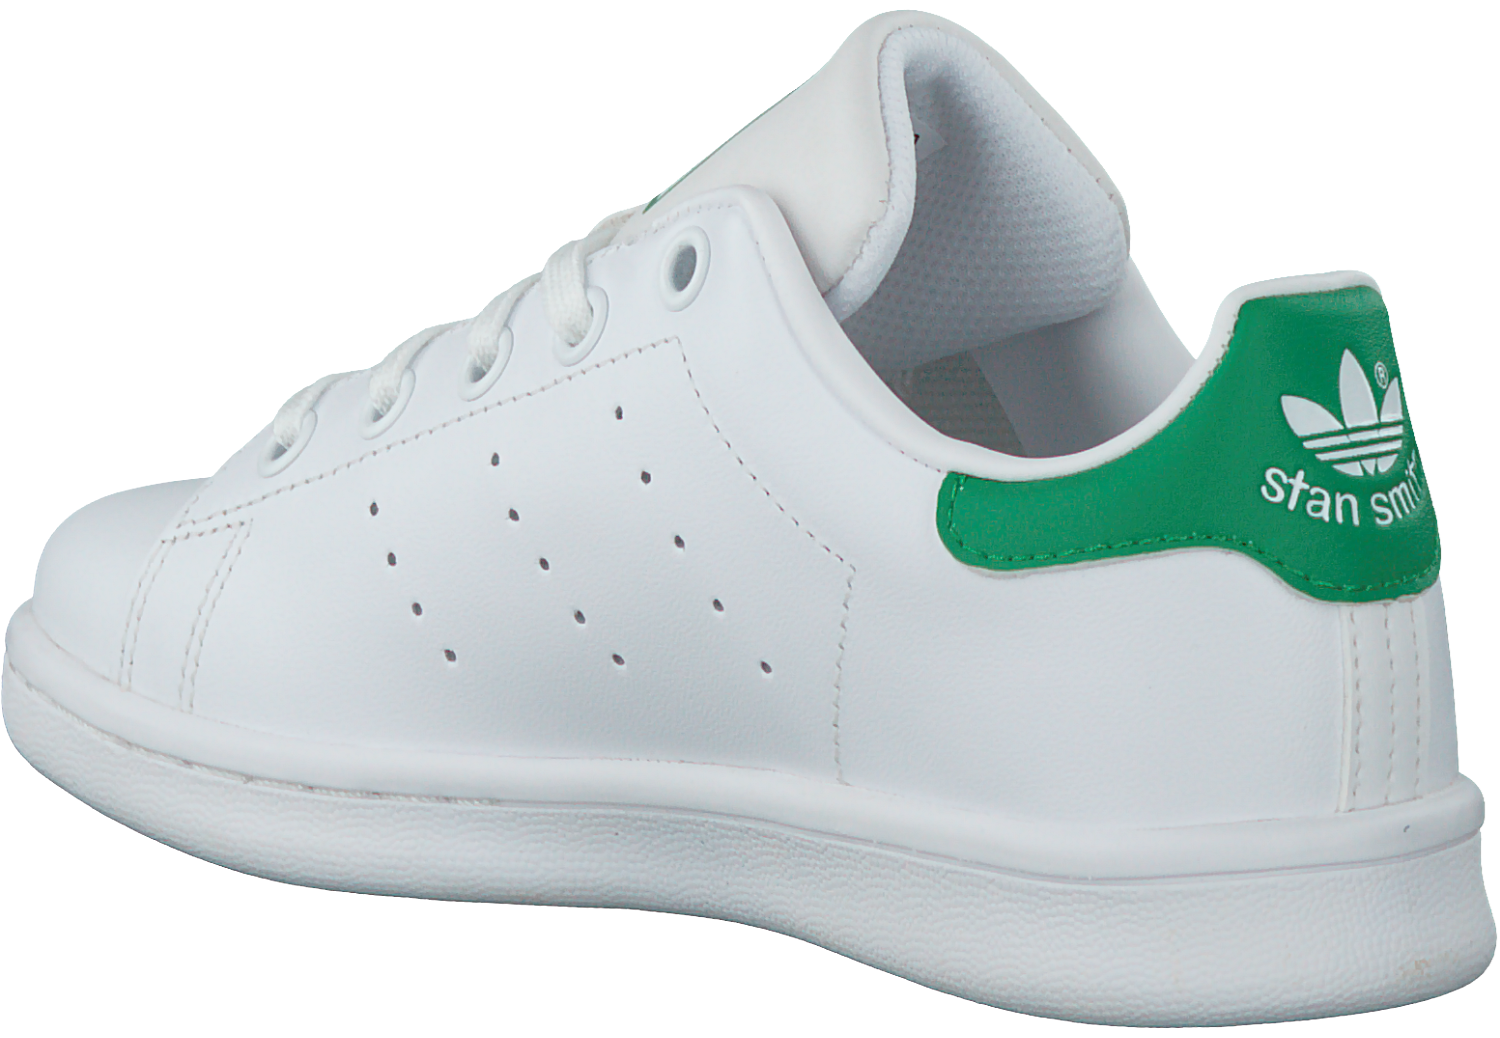 6aed70bcd37 Adidas Smith Sneakers C be Omoda Stan Witte pzUMSV